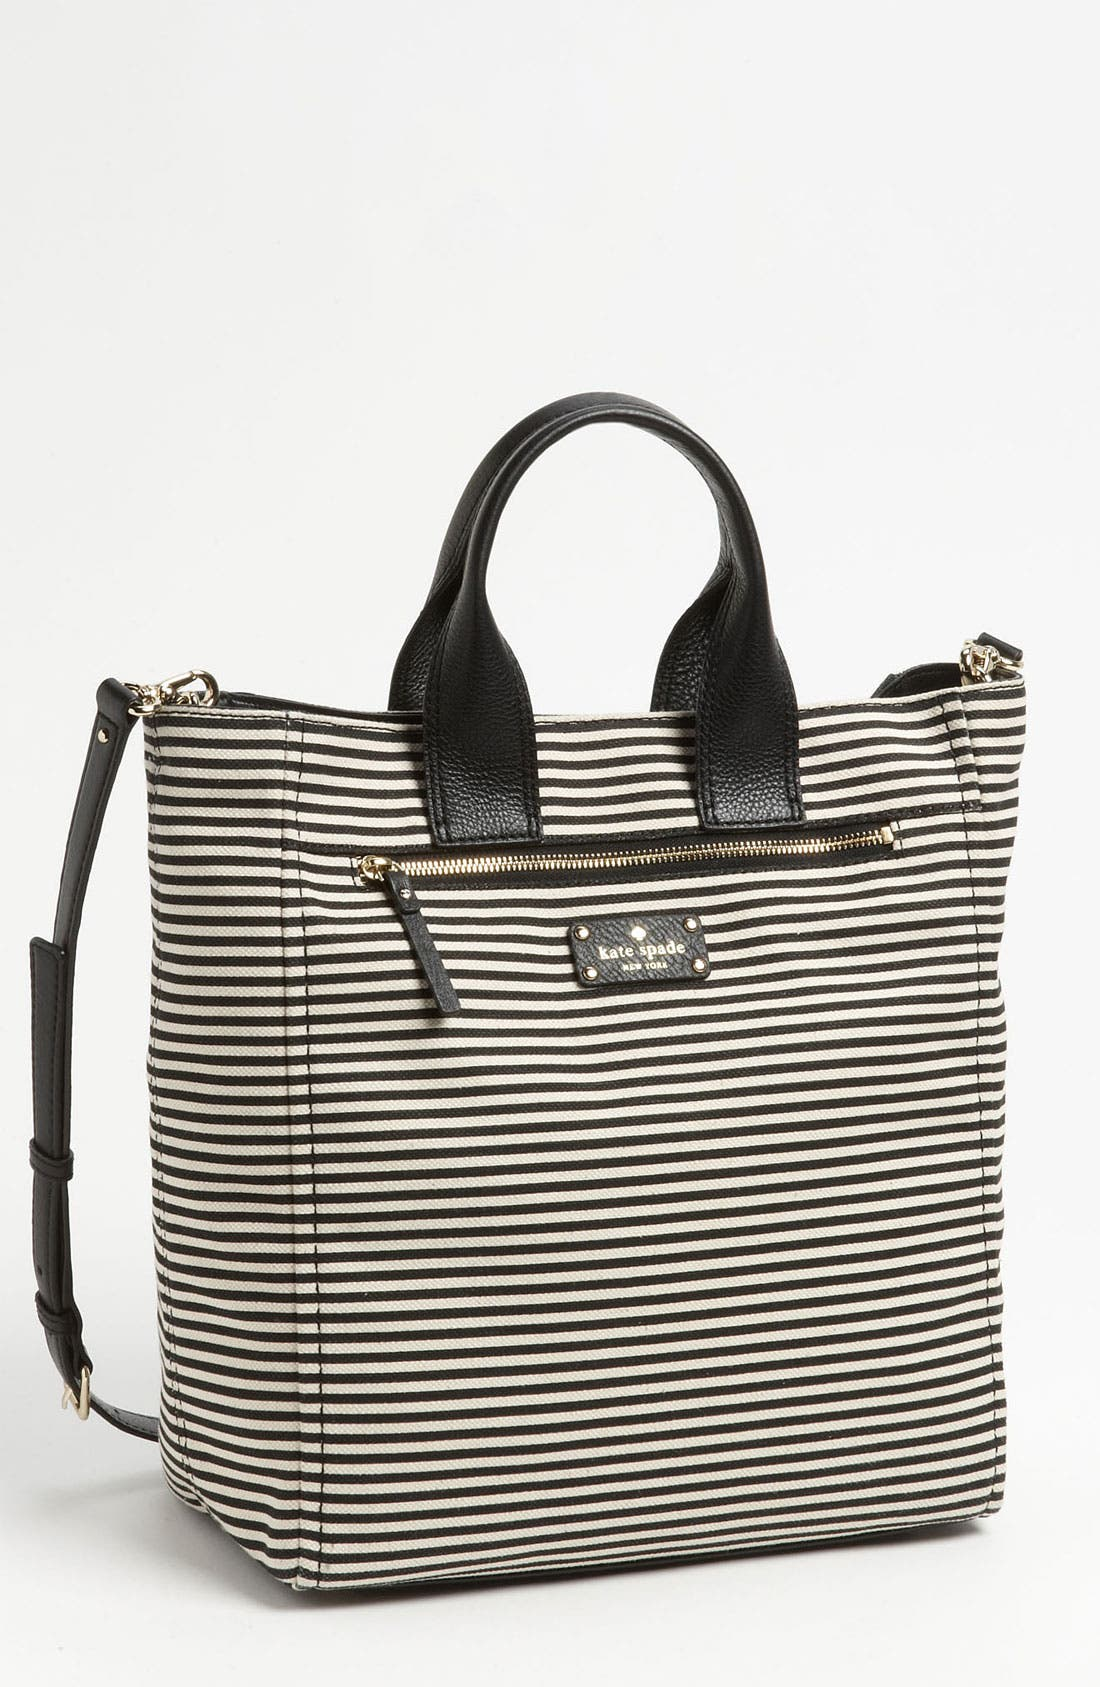 Alternate Image 1 Selected - kate spade new york 'hayley' tote